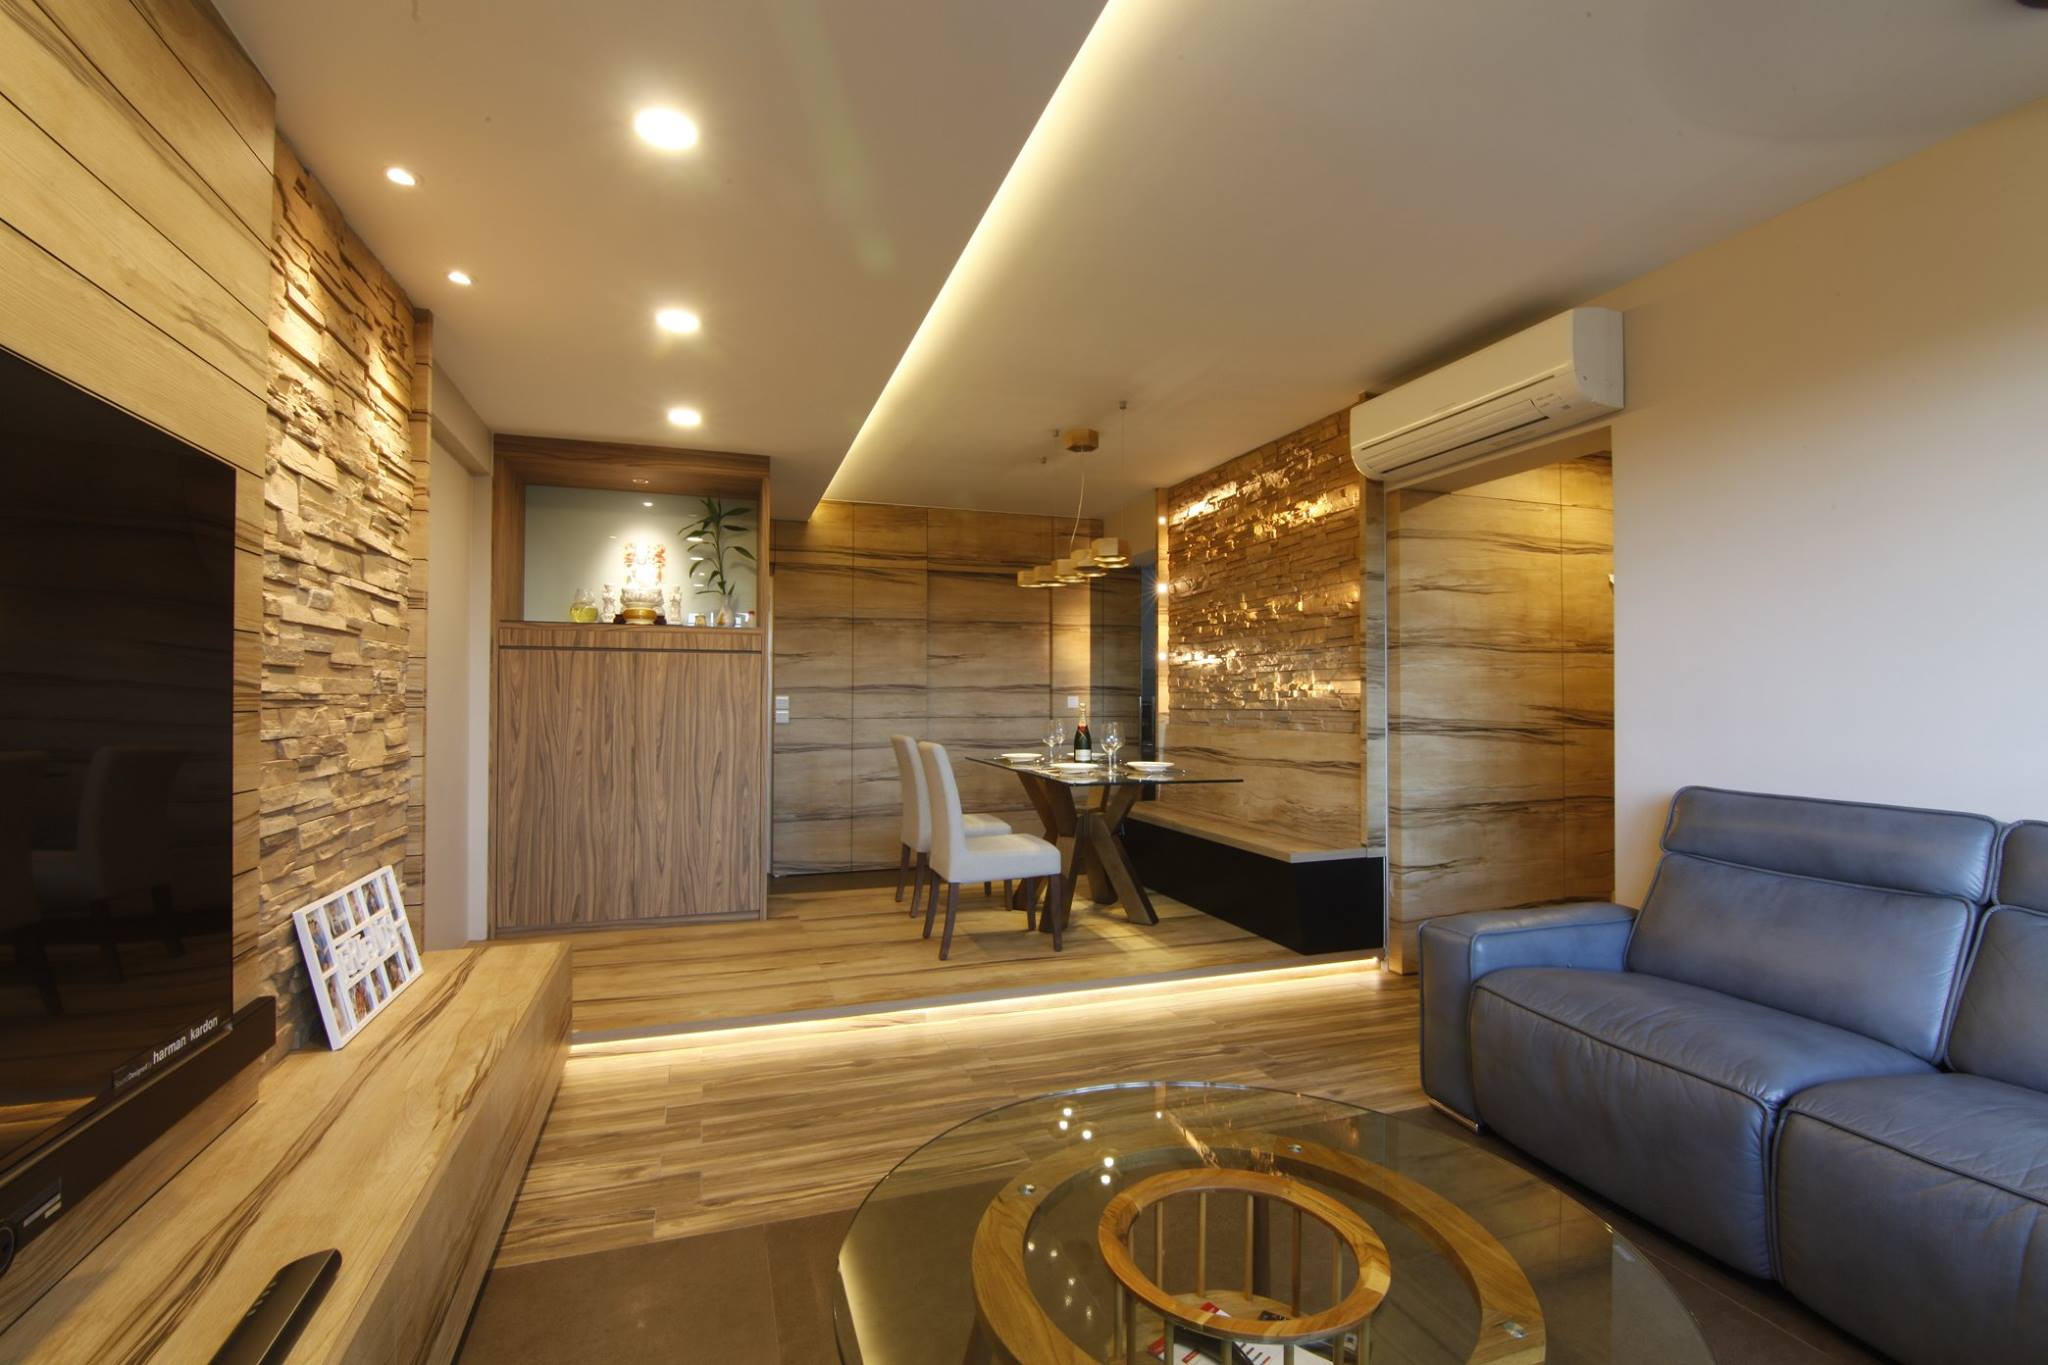 Tranquilizing modern resort interior design with wood grain laminate and bricks - Interior design modern ...